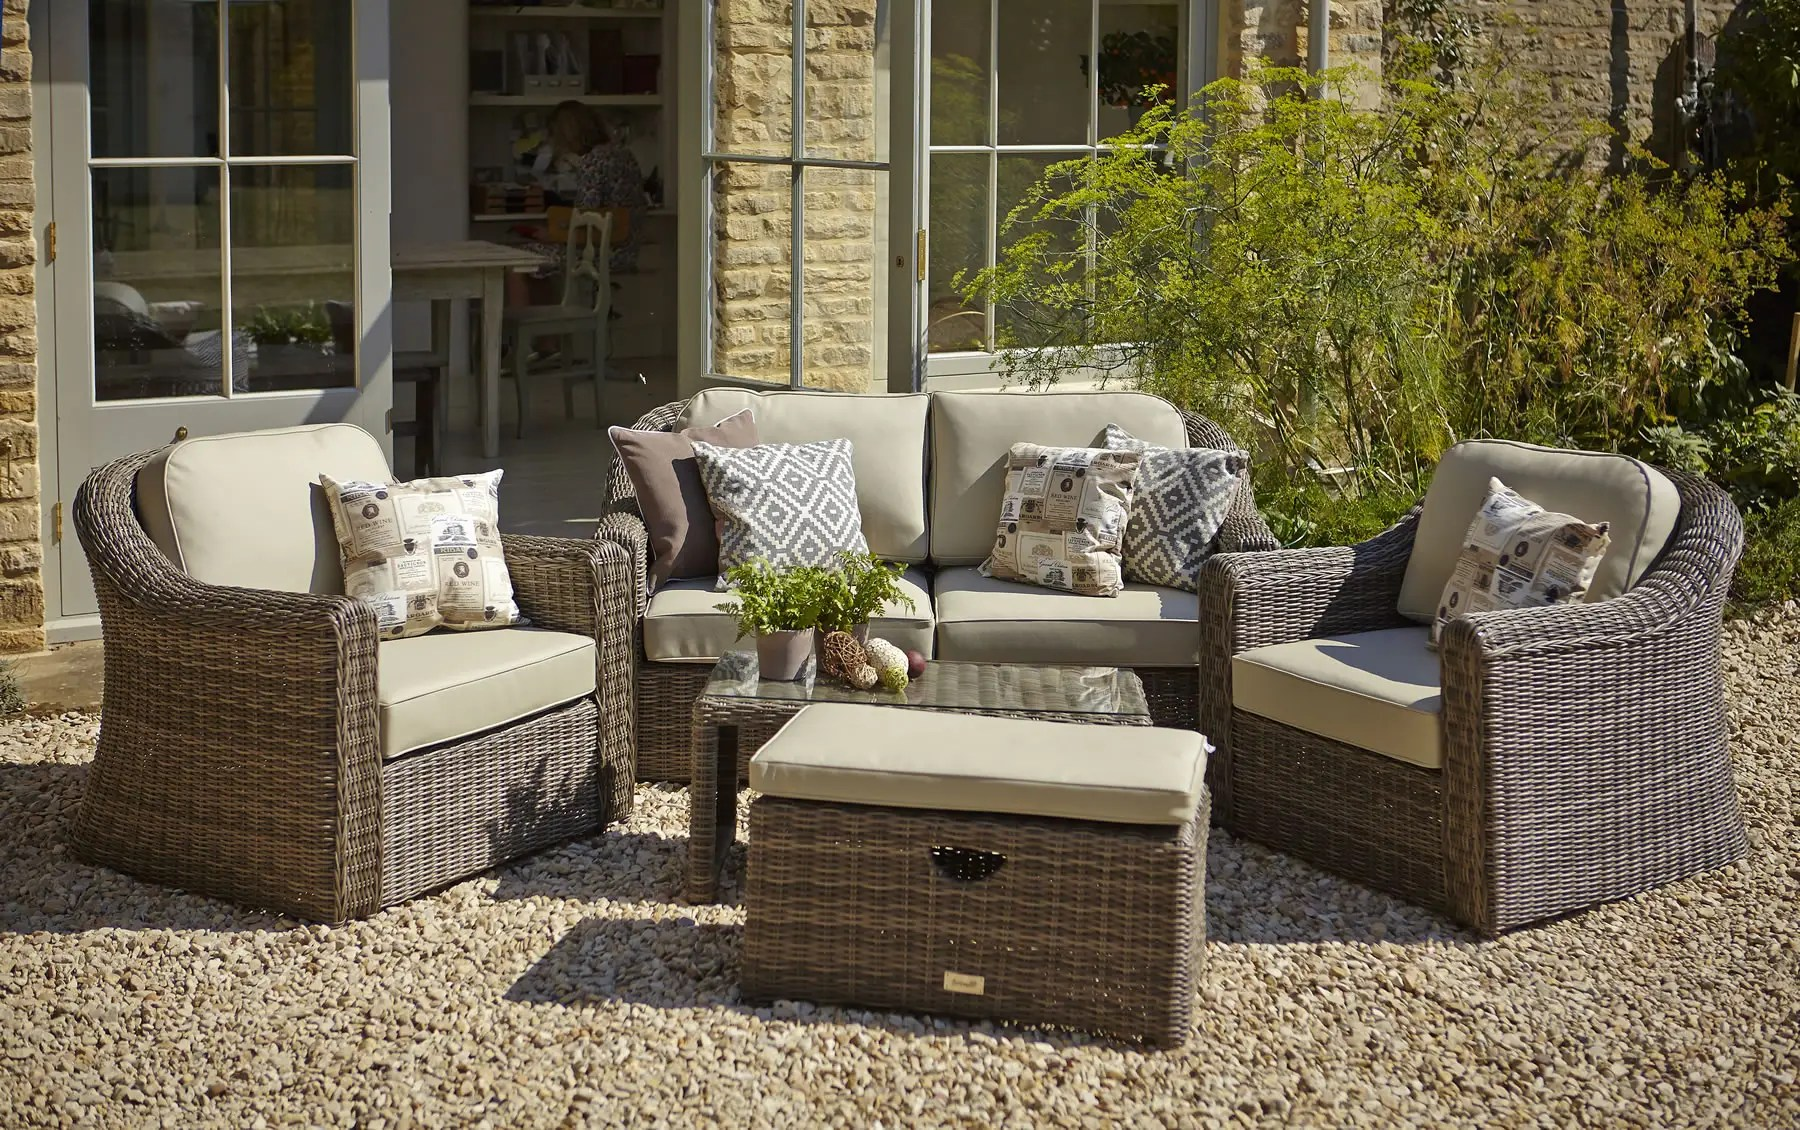 Outdoor Furniture Online Hartman Semerang Birch Lounge Set With Weather Ready